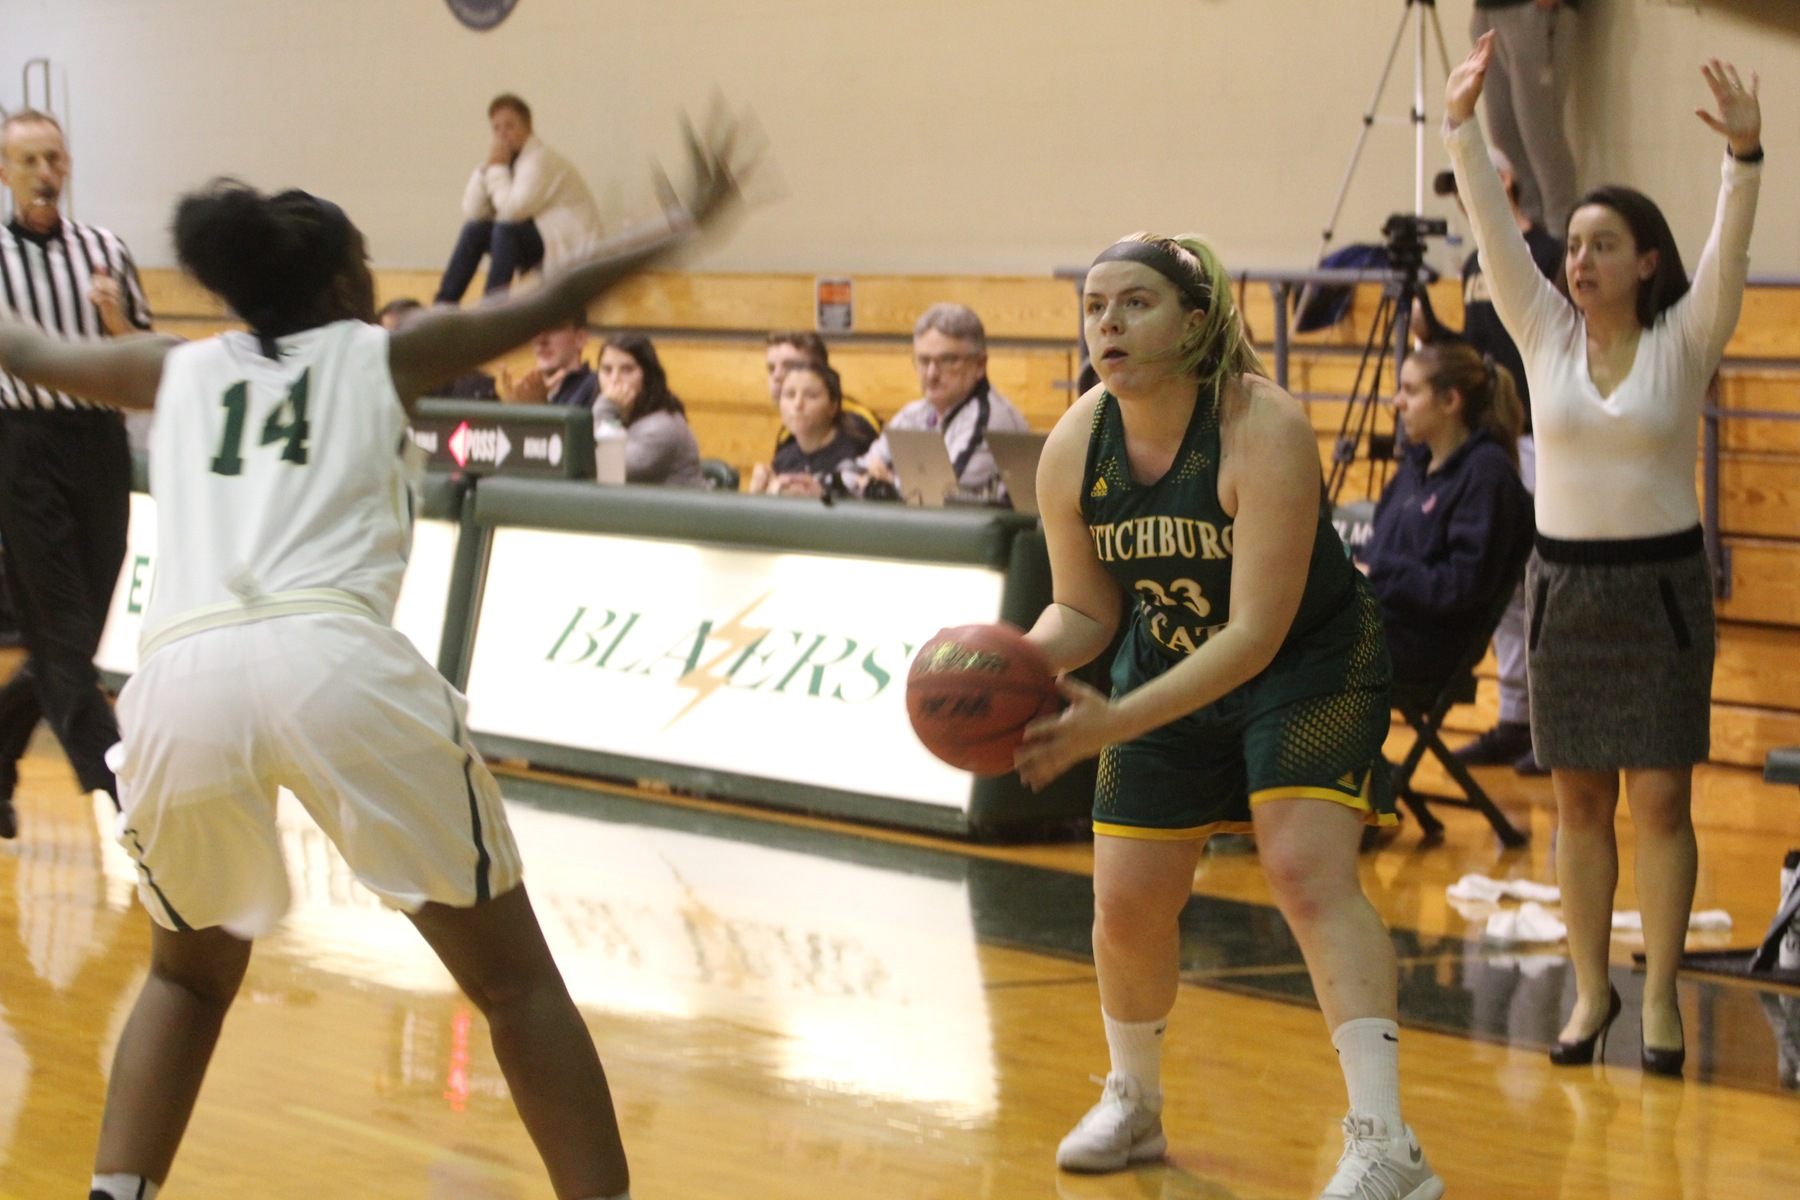 Falcons Clipped By Mustangs, 94-80